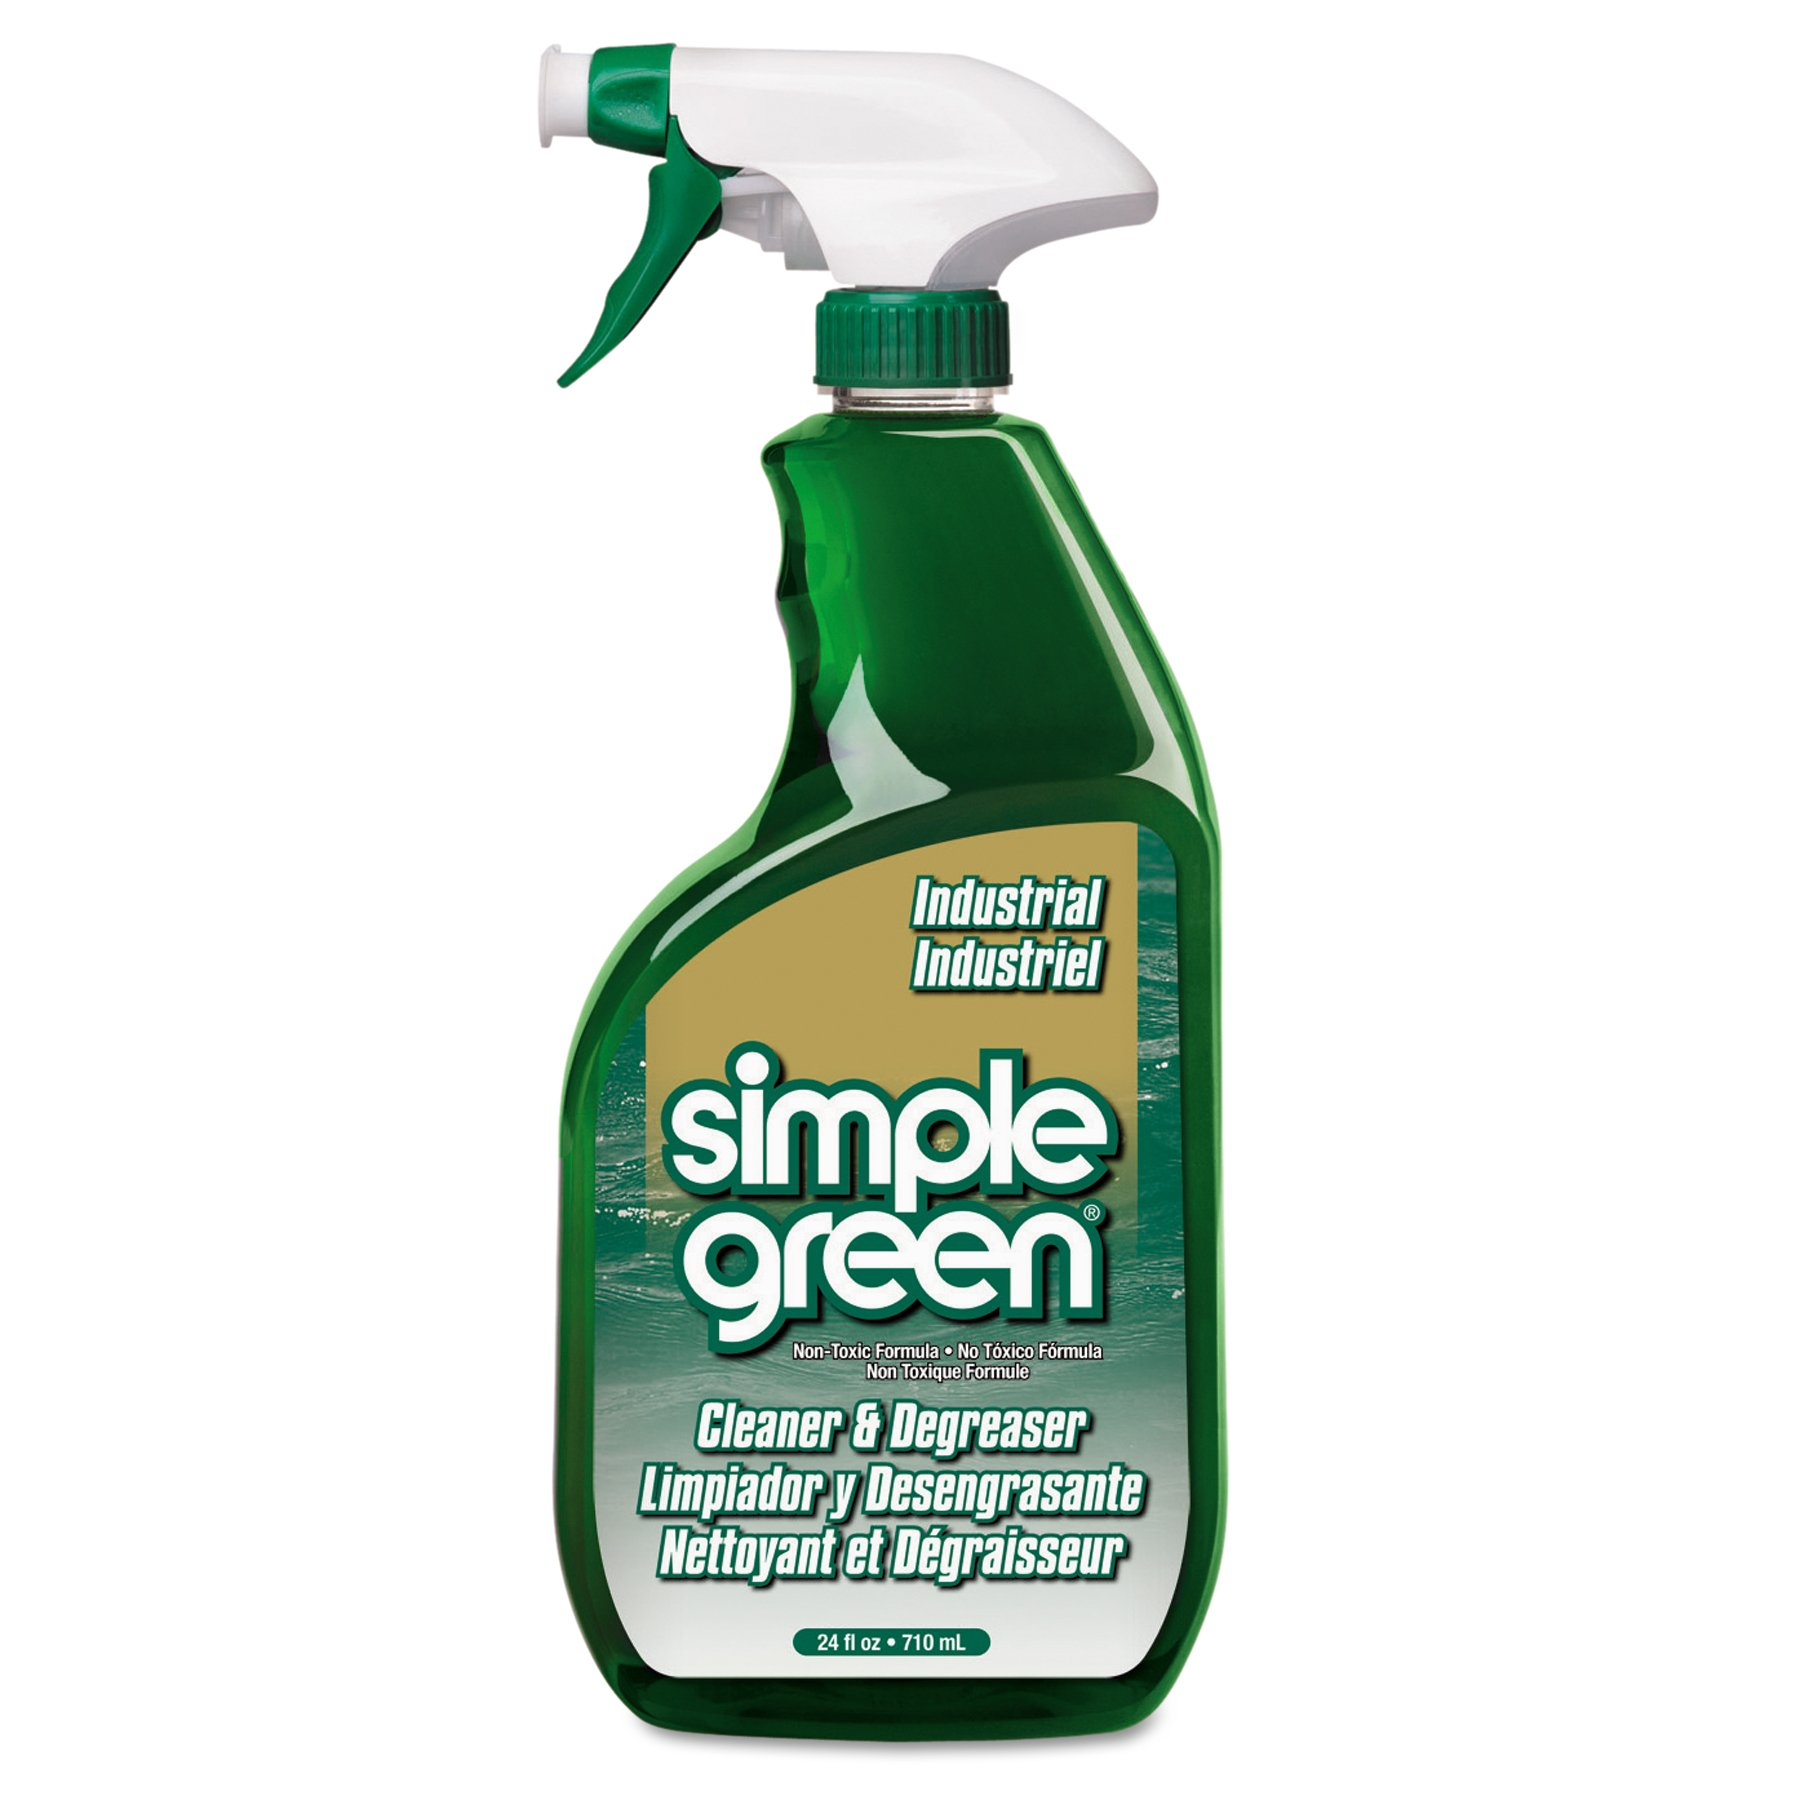 Simple Green 2710001213012 Concentrated Cleaner/Deodorizer, 24 fl. oz., Trigger Spray (Pack of 12)